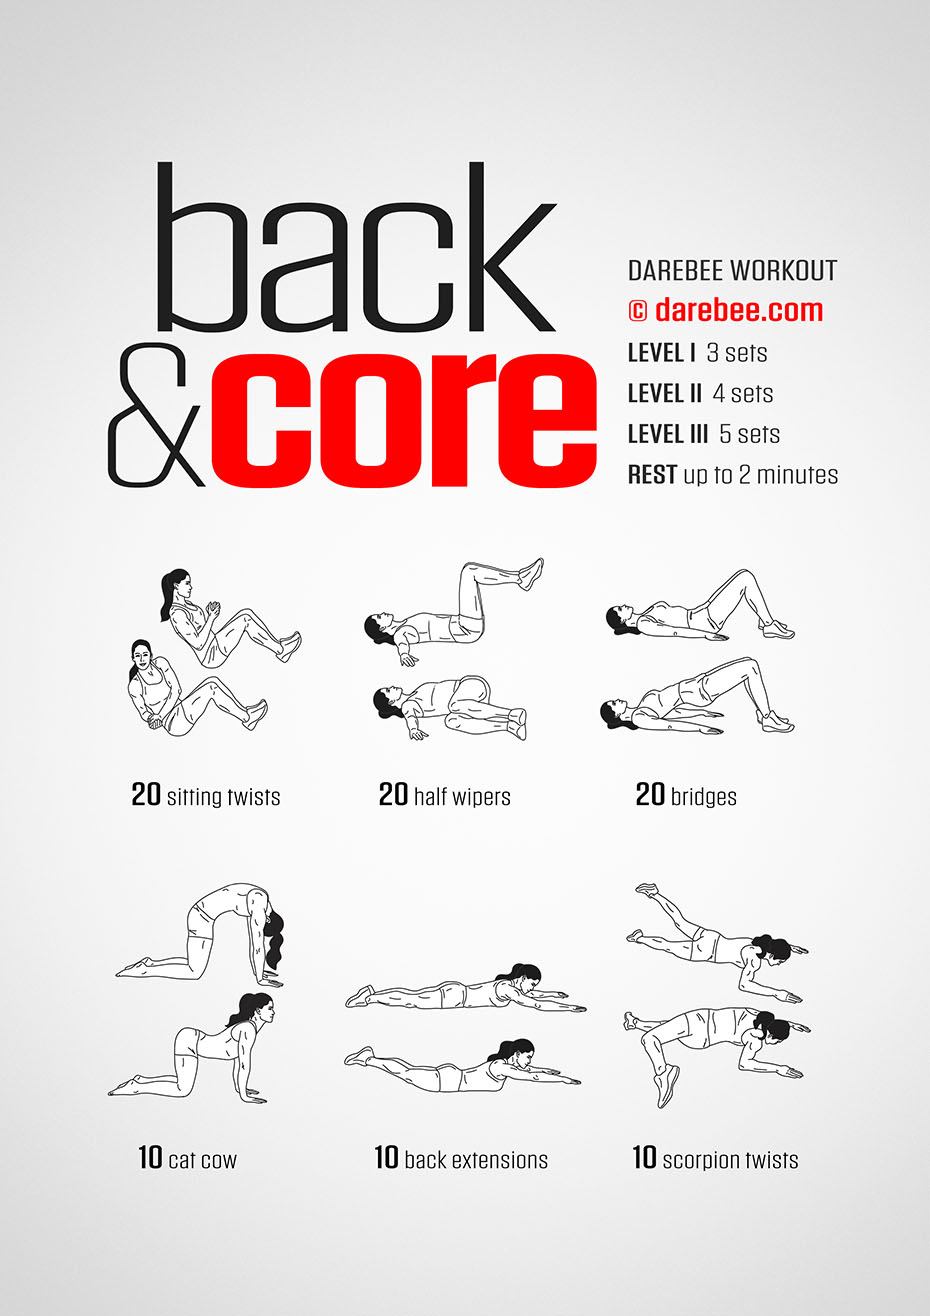 Back amp Core Workout